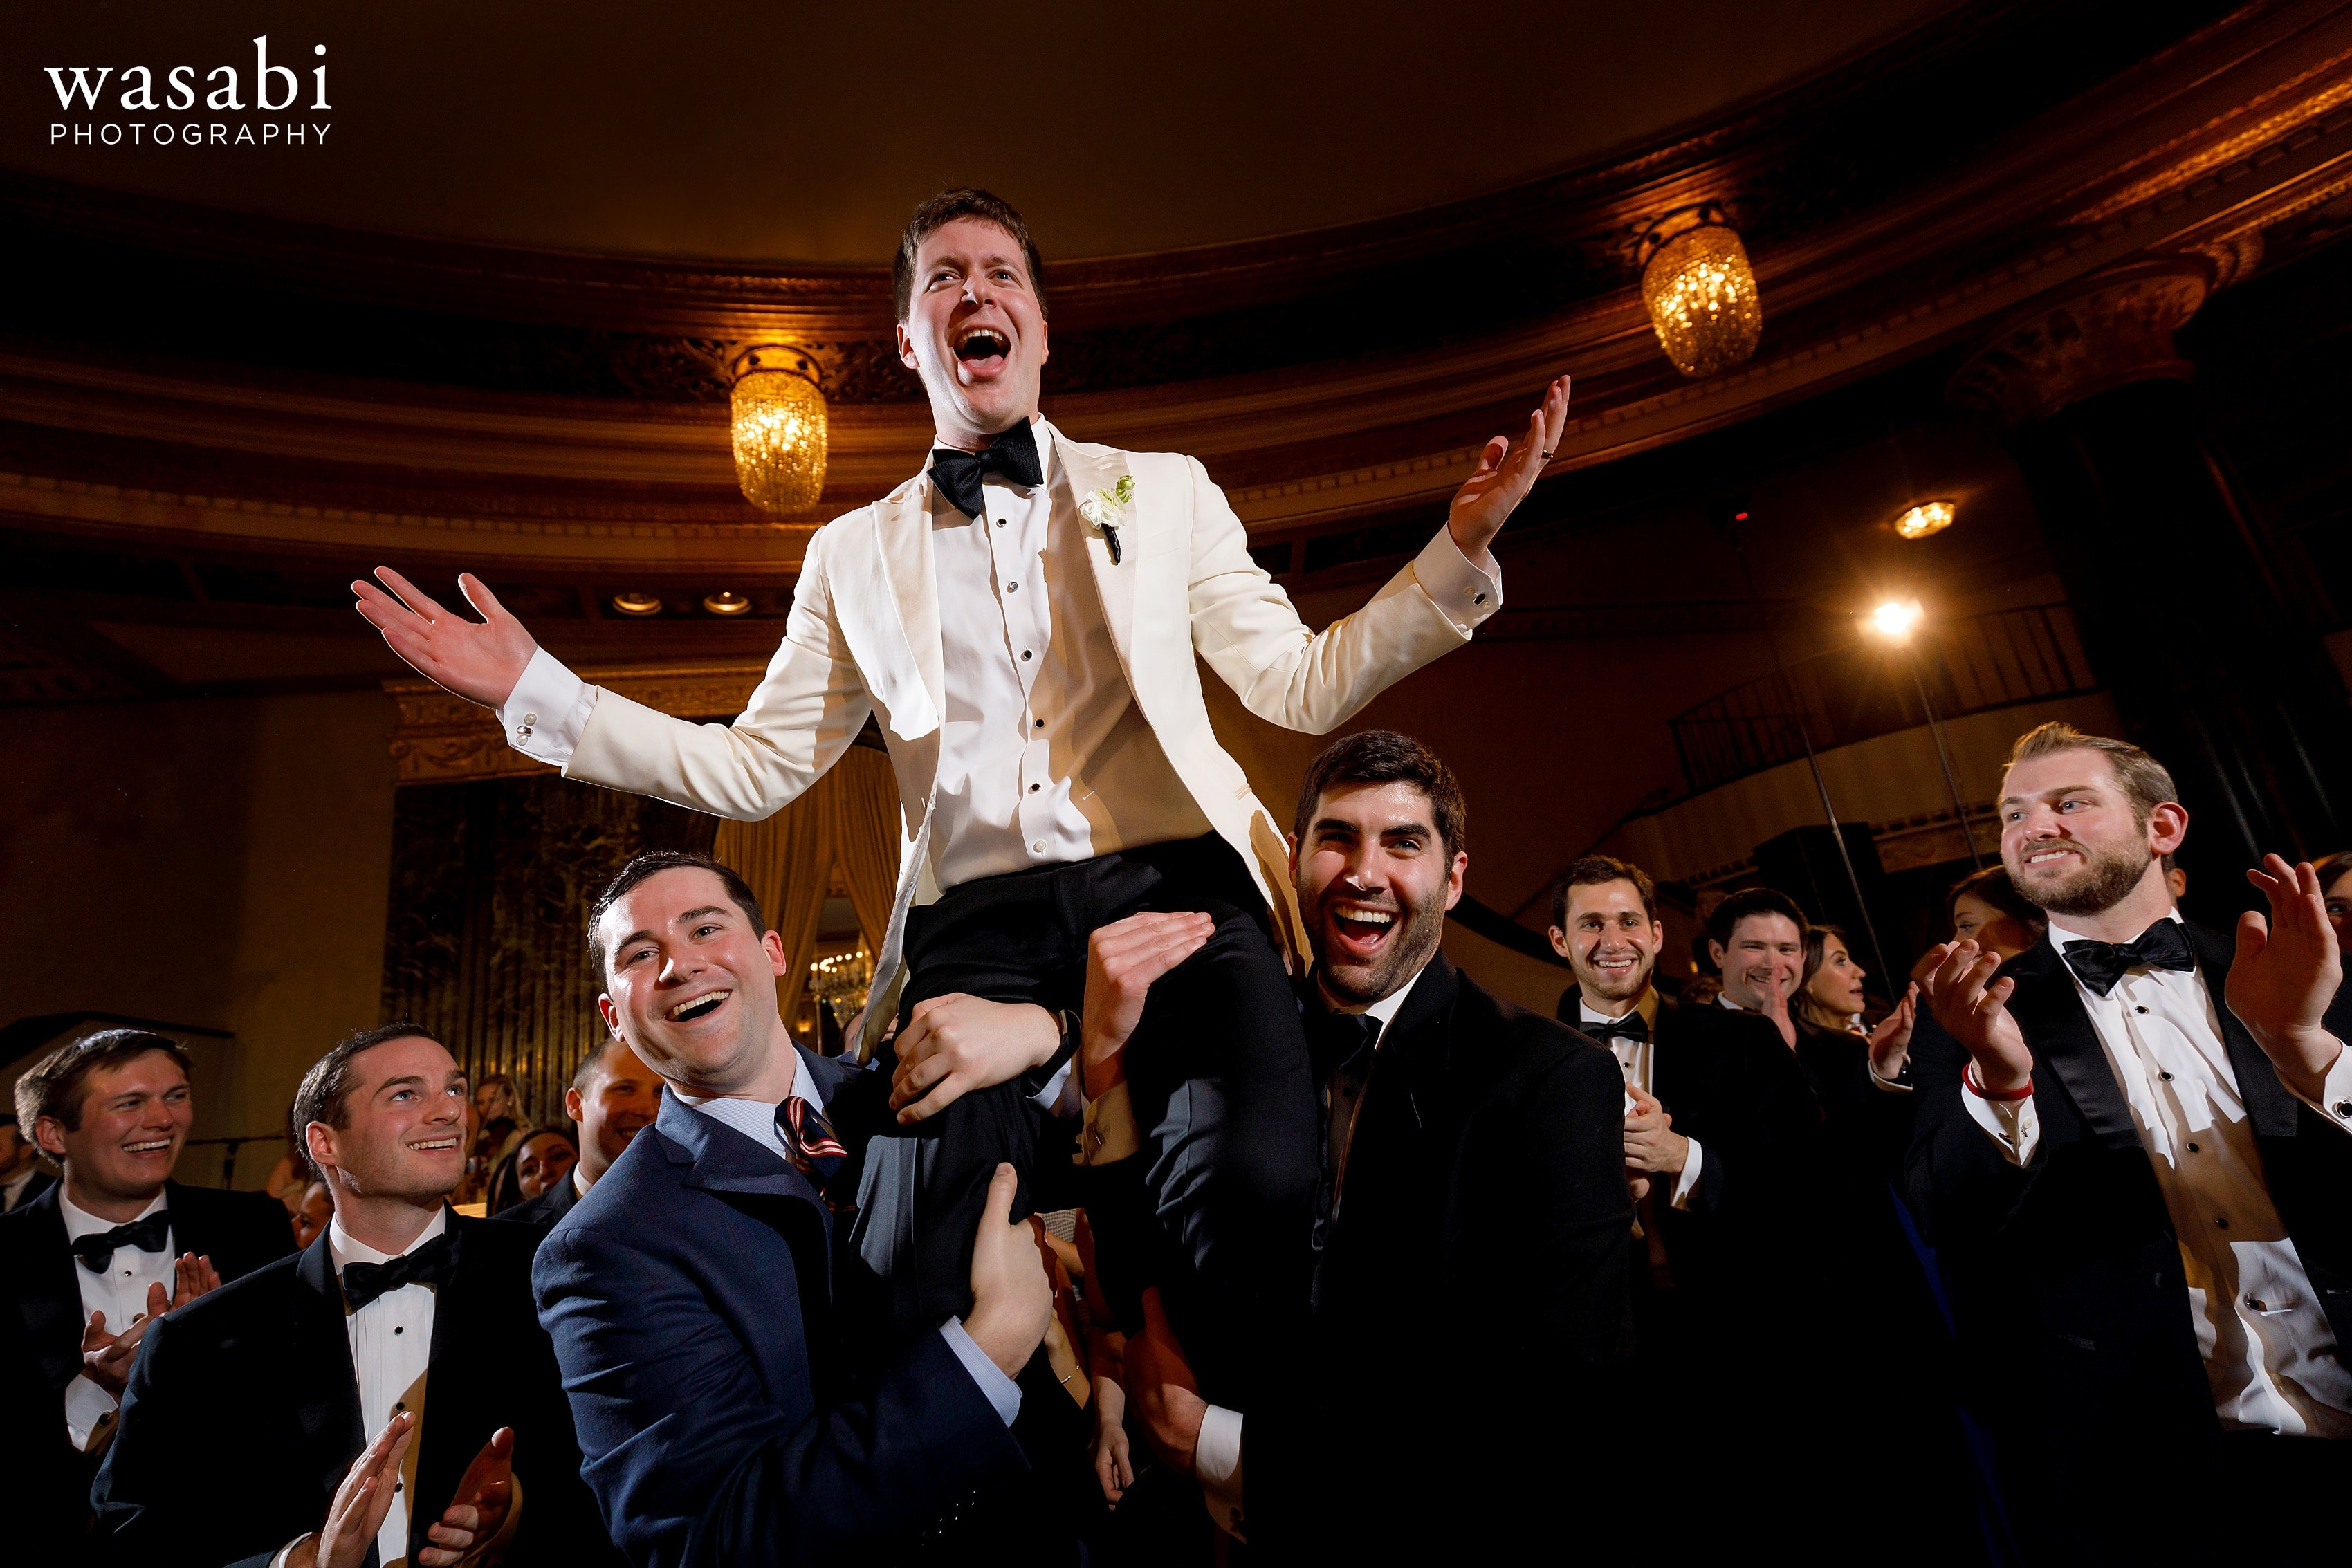 groom is lifted up by friends during Jewish wedding reception at InterContinental Chicago Magnificent Mile Hotel